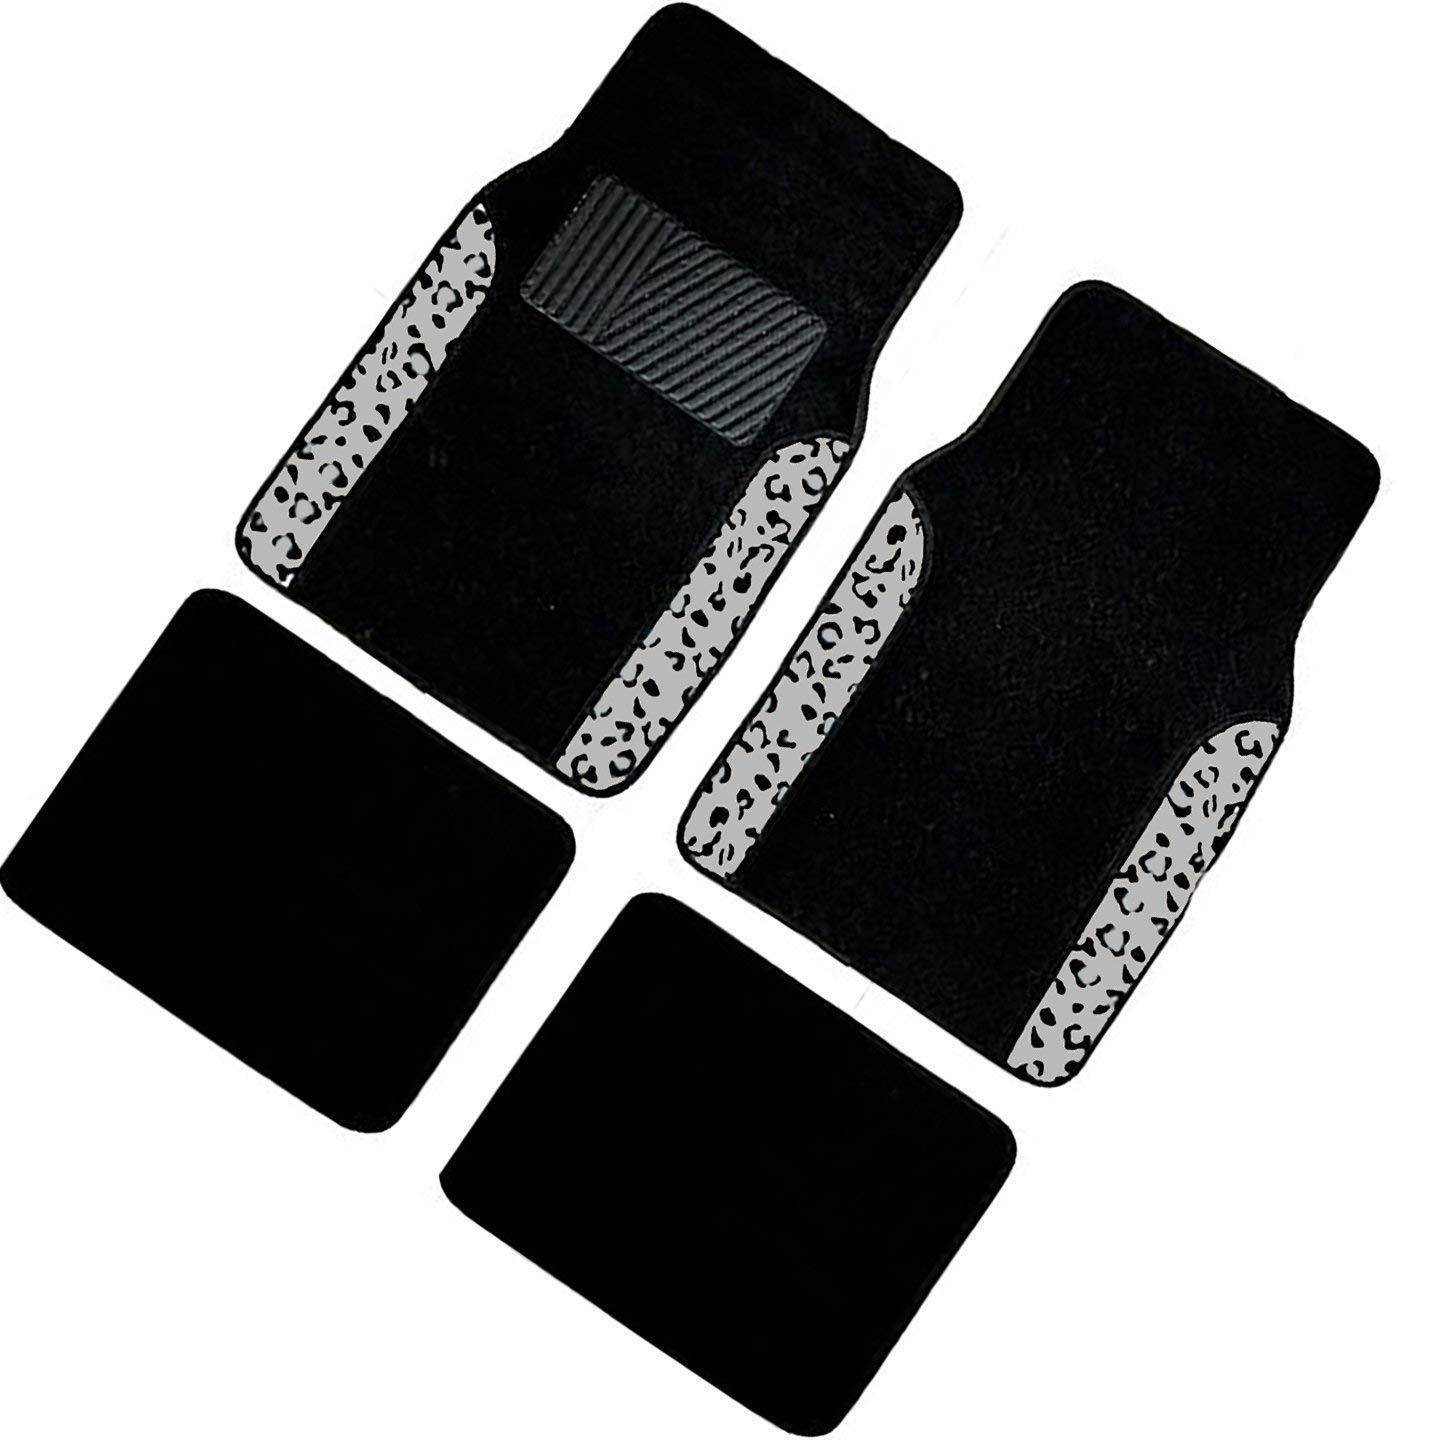 A Set of 4 Universal Fit Plush Carpet with Animal Print Floor Mats For Cars / Trucks (Gray Leopard)